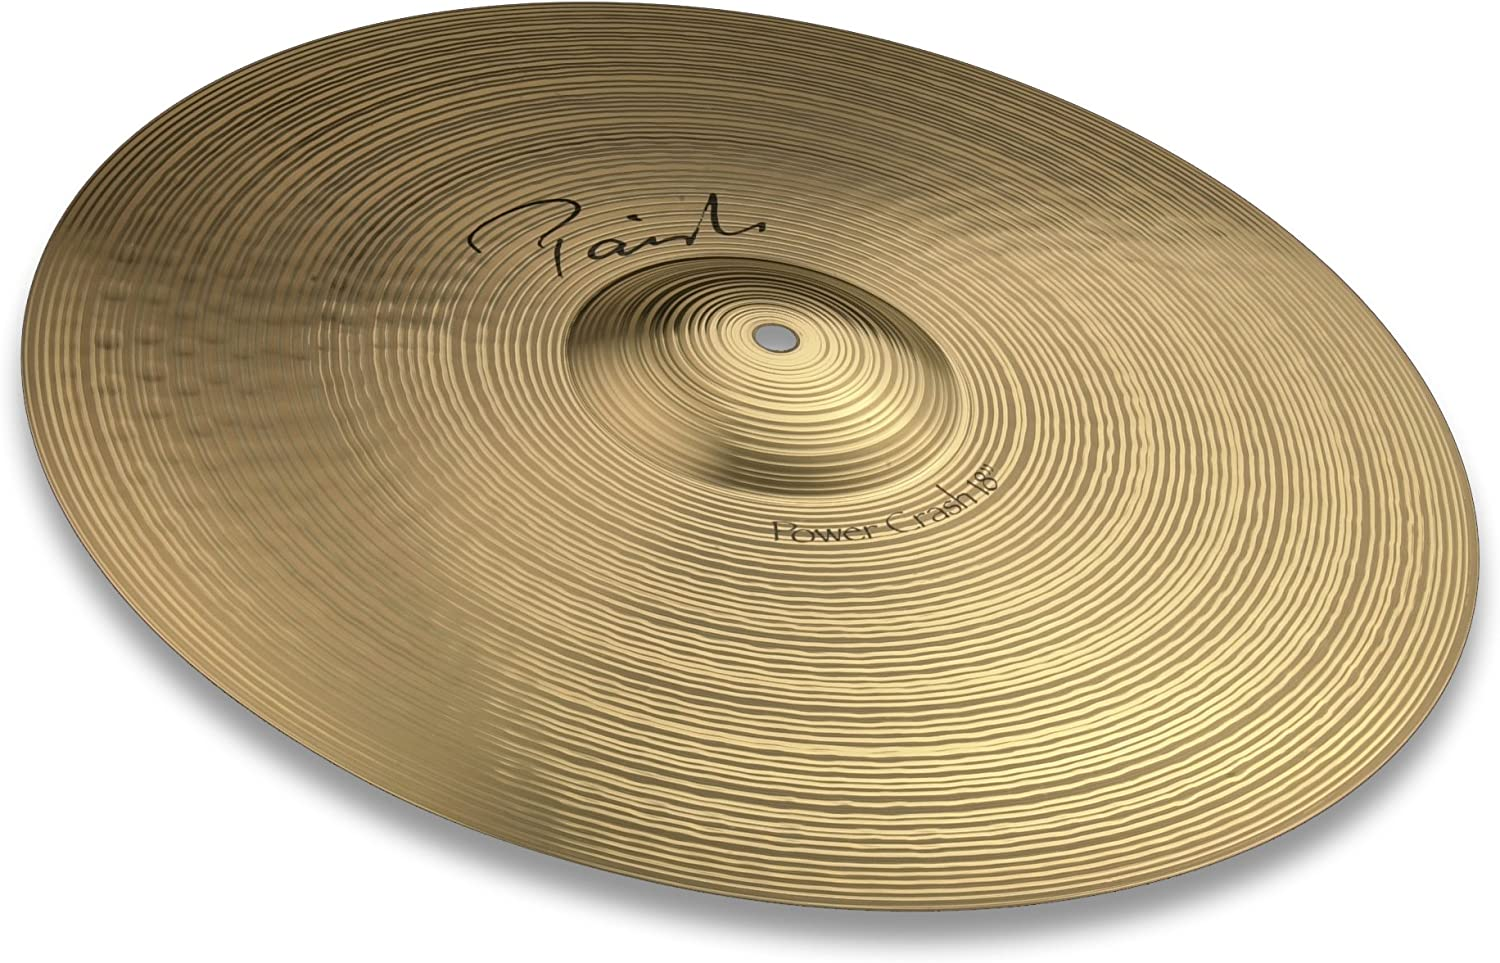 Paiste Signature Superior Cymbal All items free shipping Crash Power 17-inch